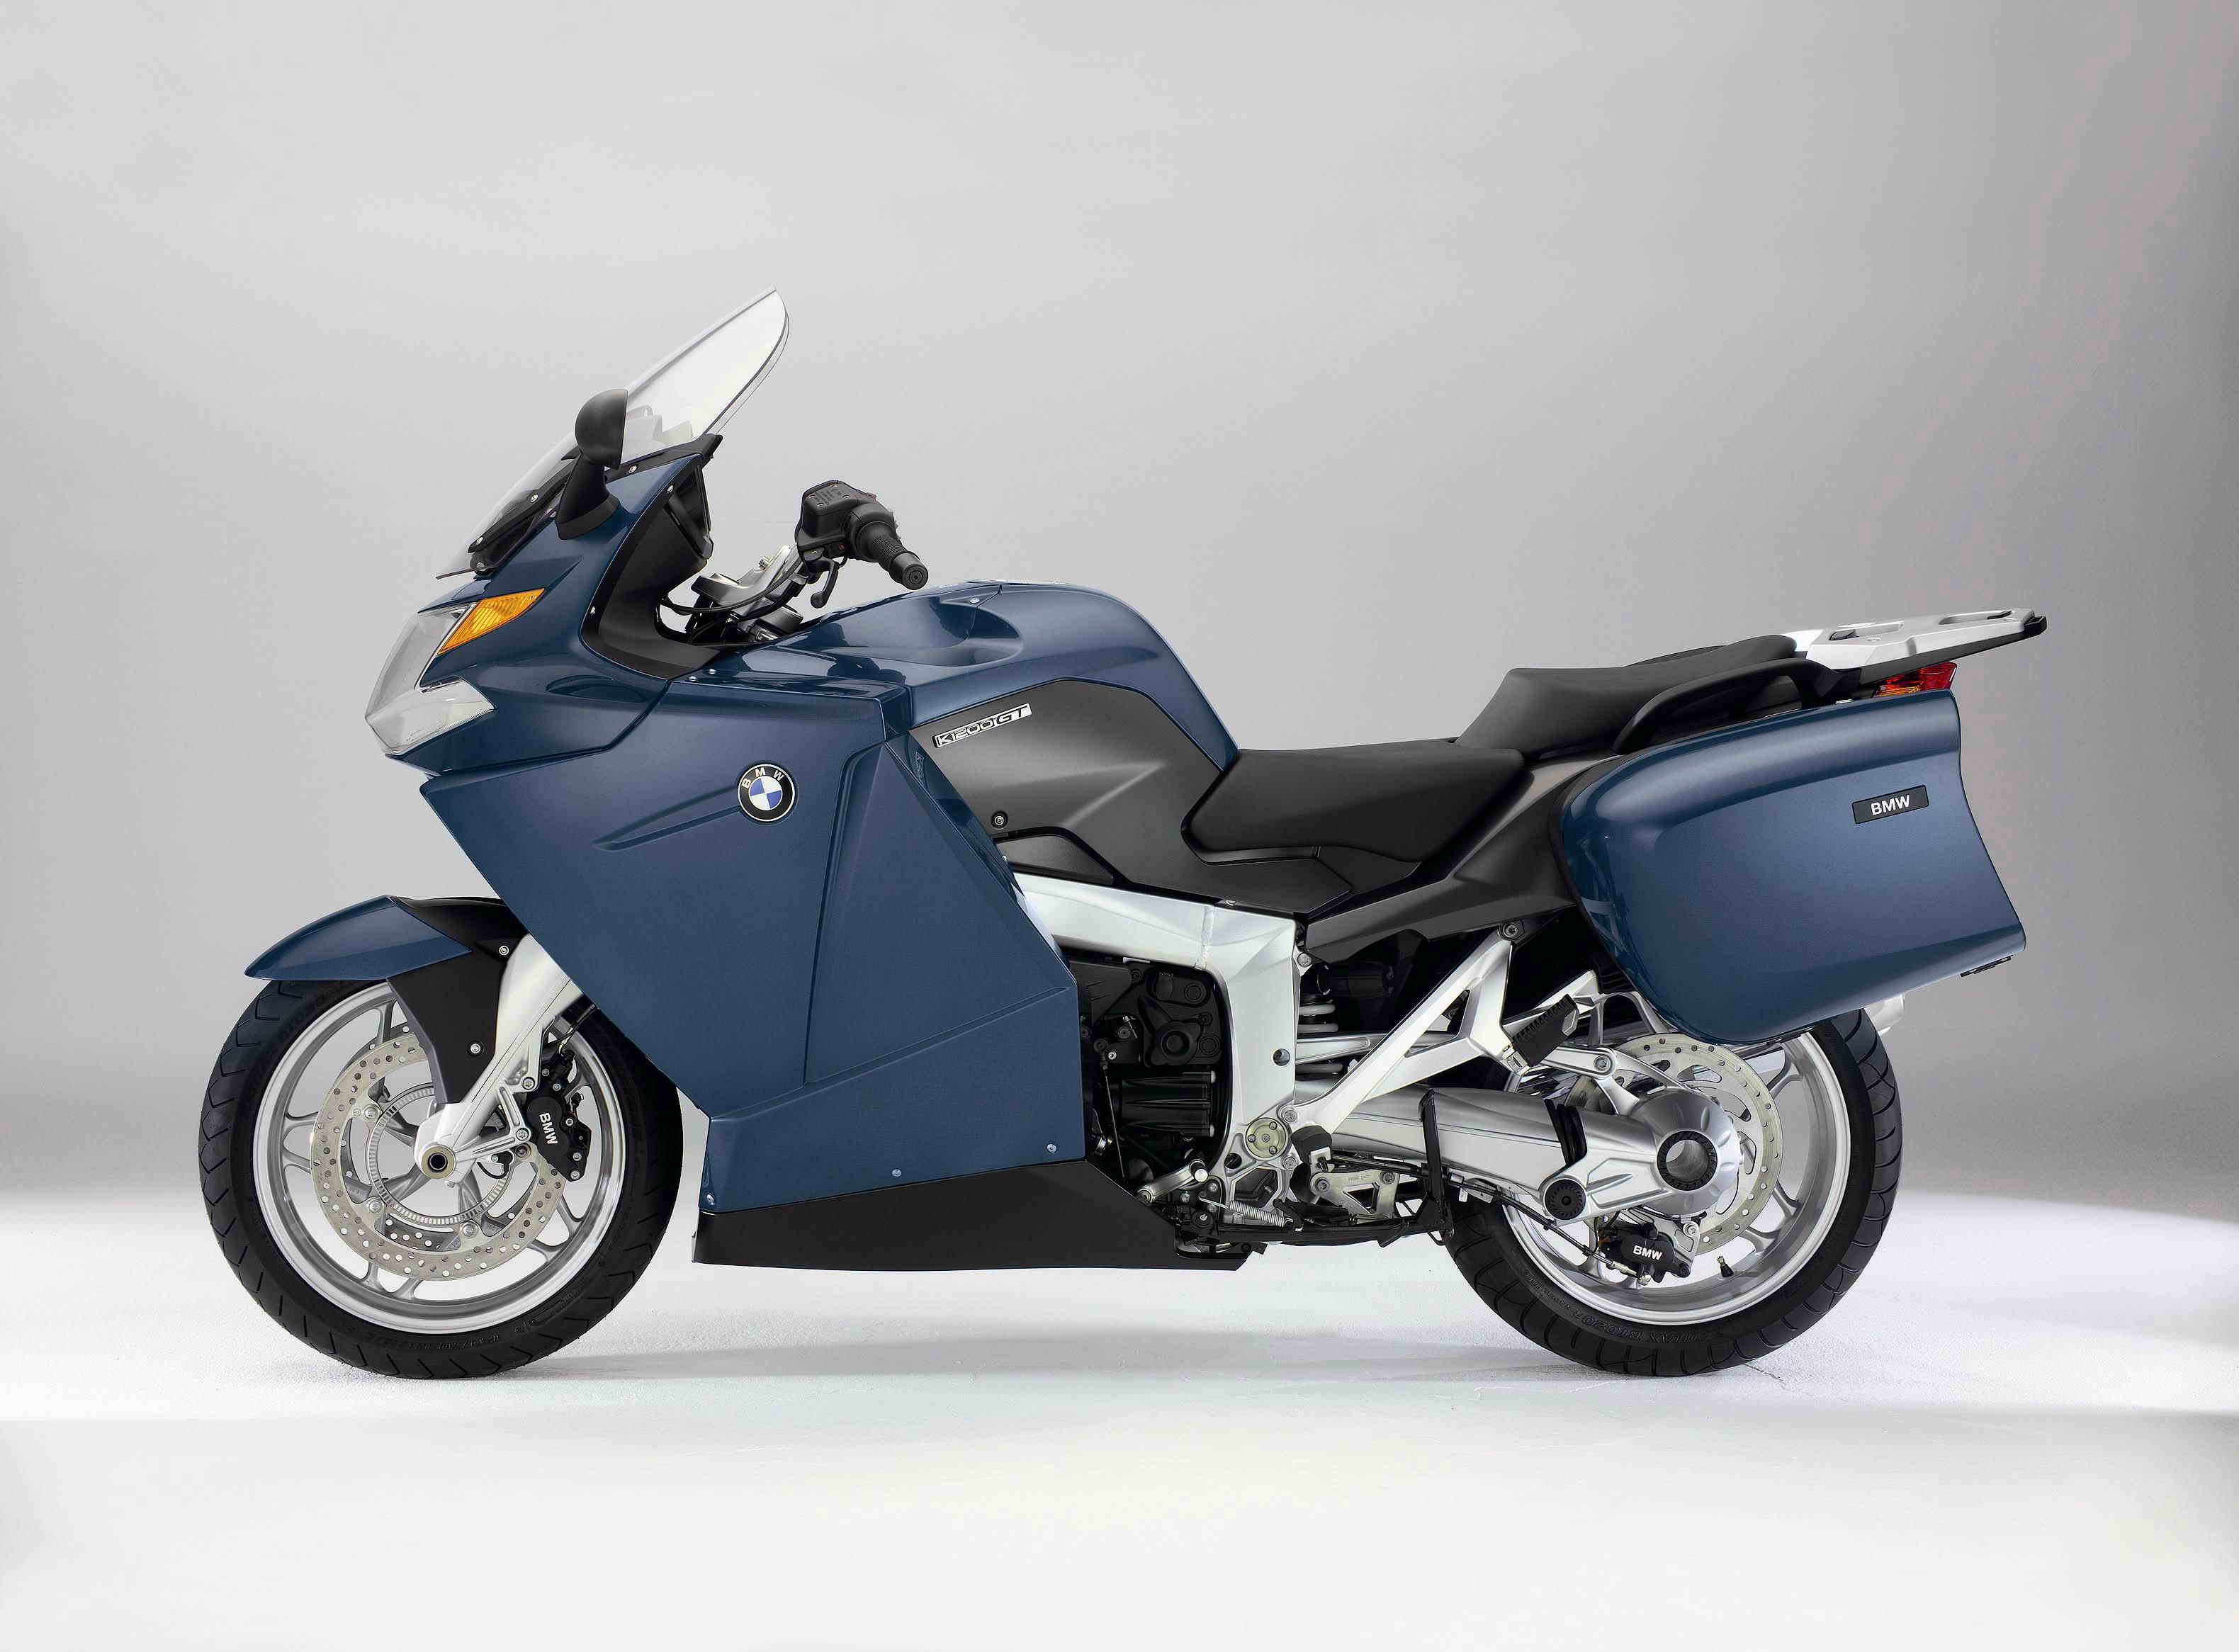 Bmw F800gt Wiring Diagram | Online Wiring Diagram on